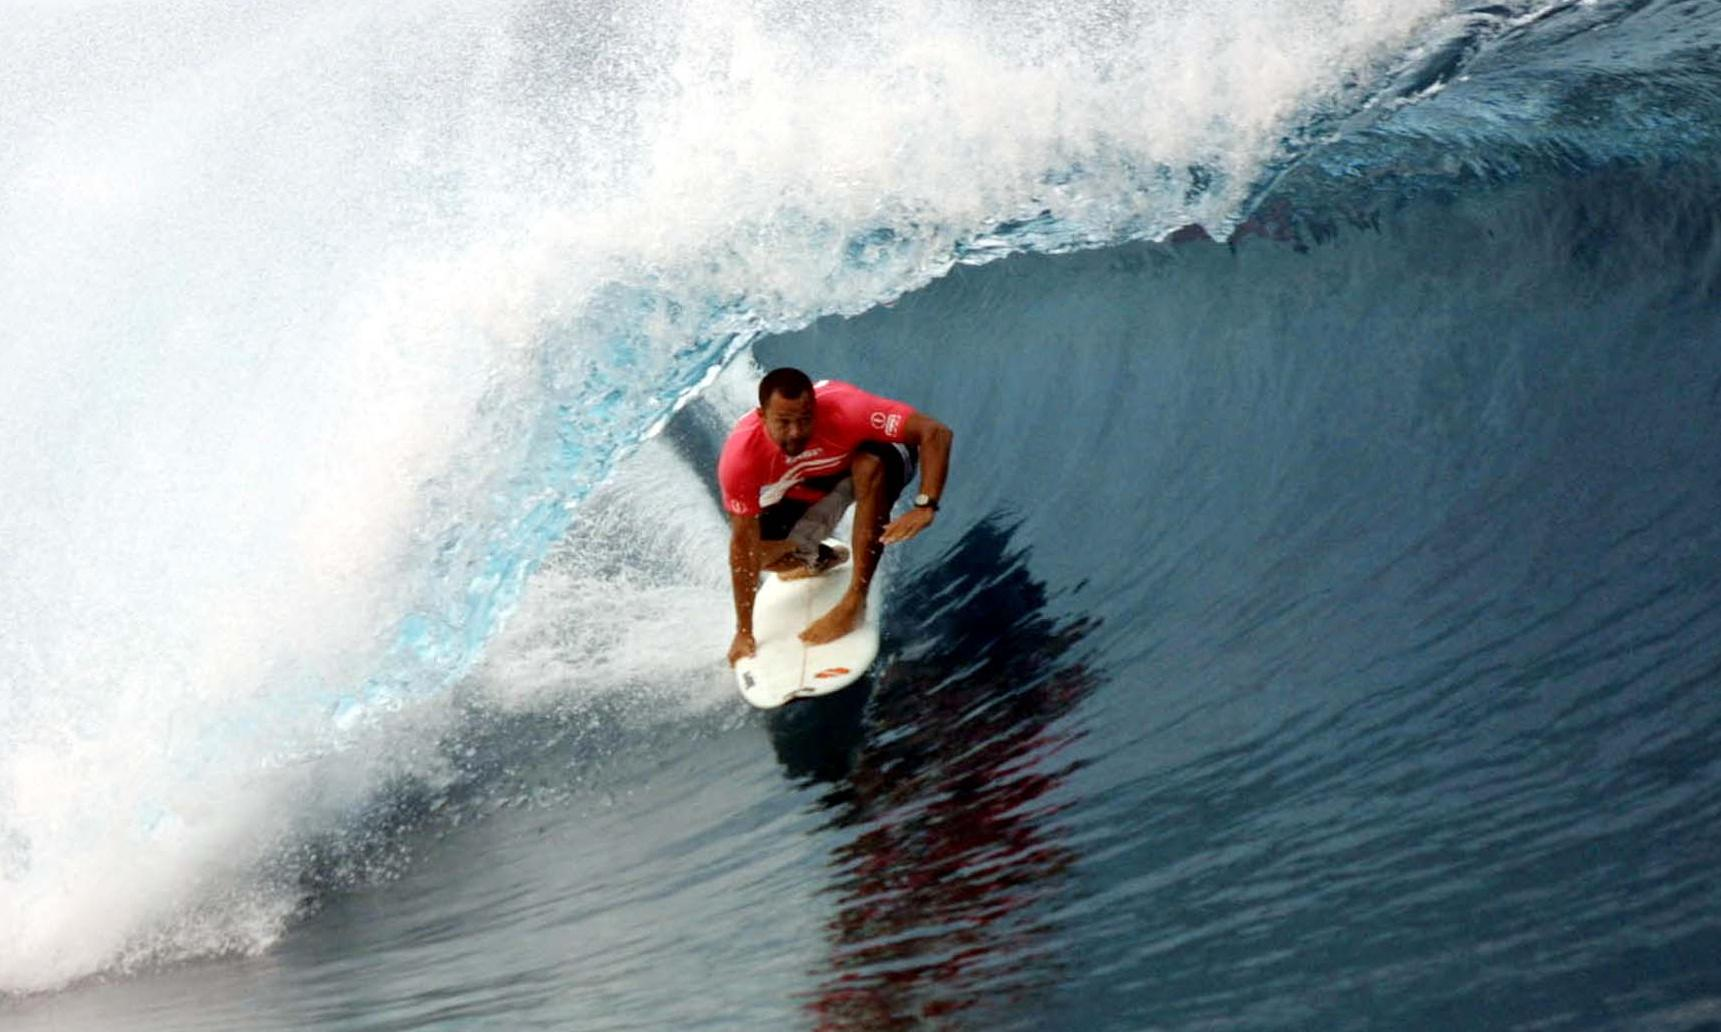 Former surfing world champion Sunny Garcia in intensive care